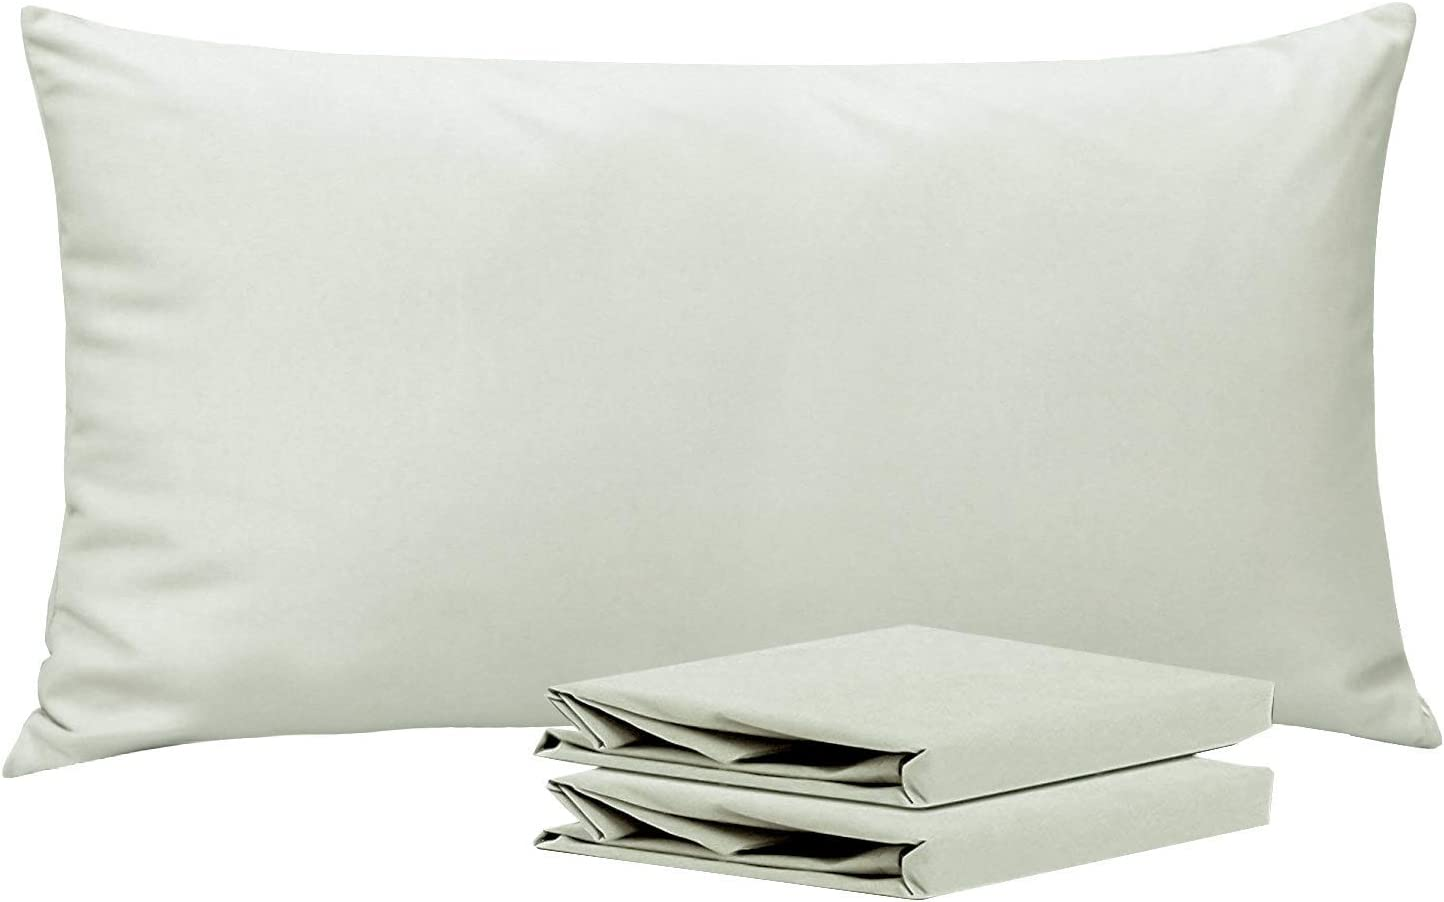 NTBAY King Pillowcases, Set of 2, 100% Brushed Microfiber, Soft and Cozy, Wrinkle, Fade, Stain Resistant, with Envelope Closure, Light Grey